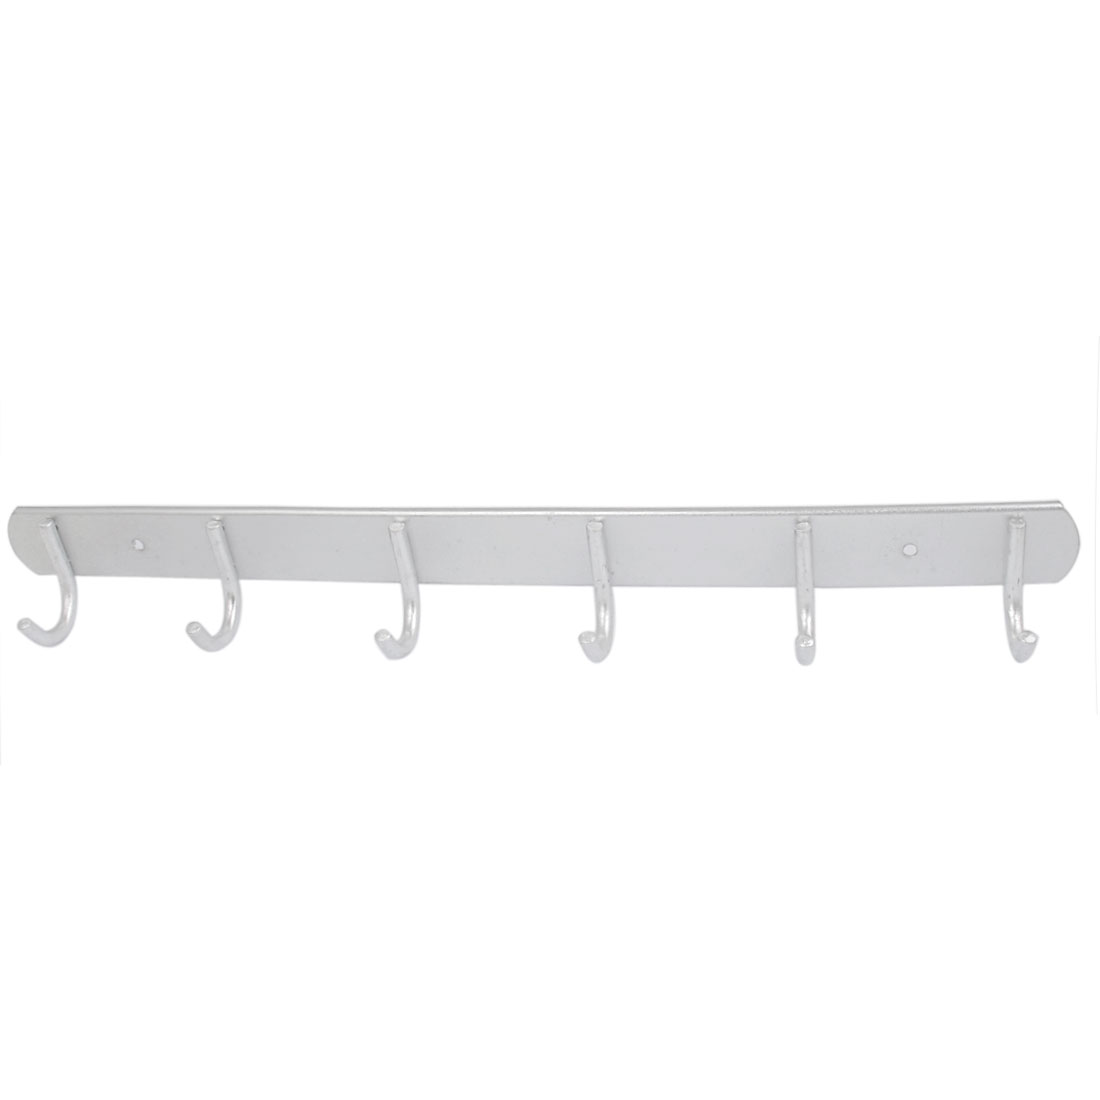 Bedroom Kitchen Aluminum 6 Hooks Wall Mounted Hanger Towel Clothes Hanging Rack